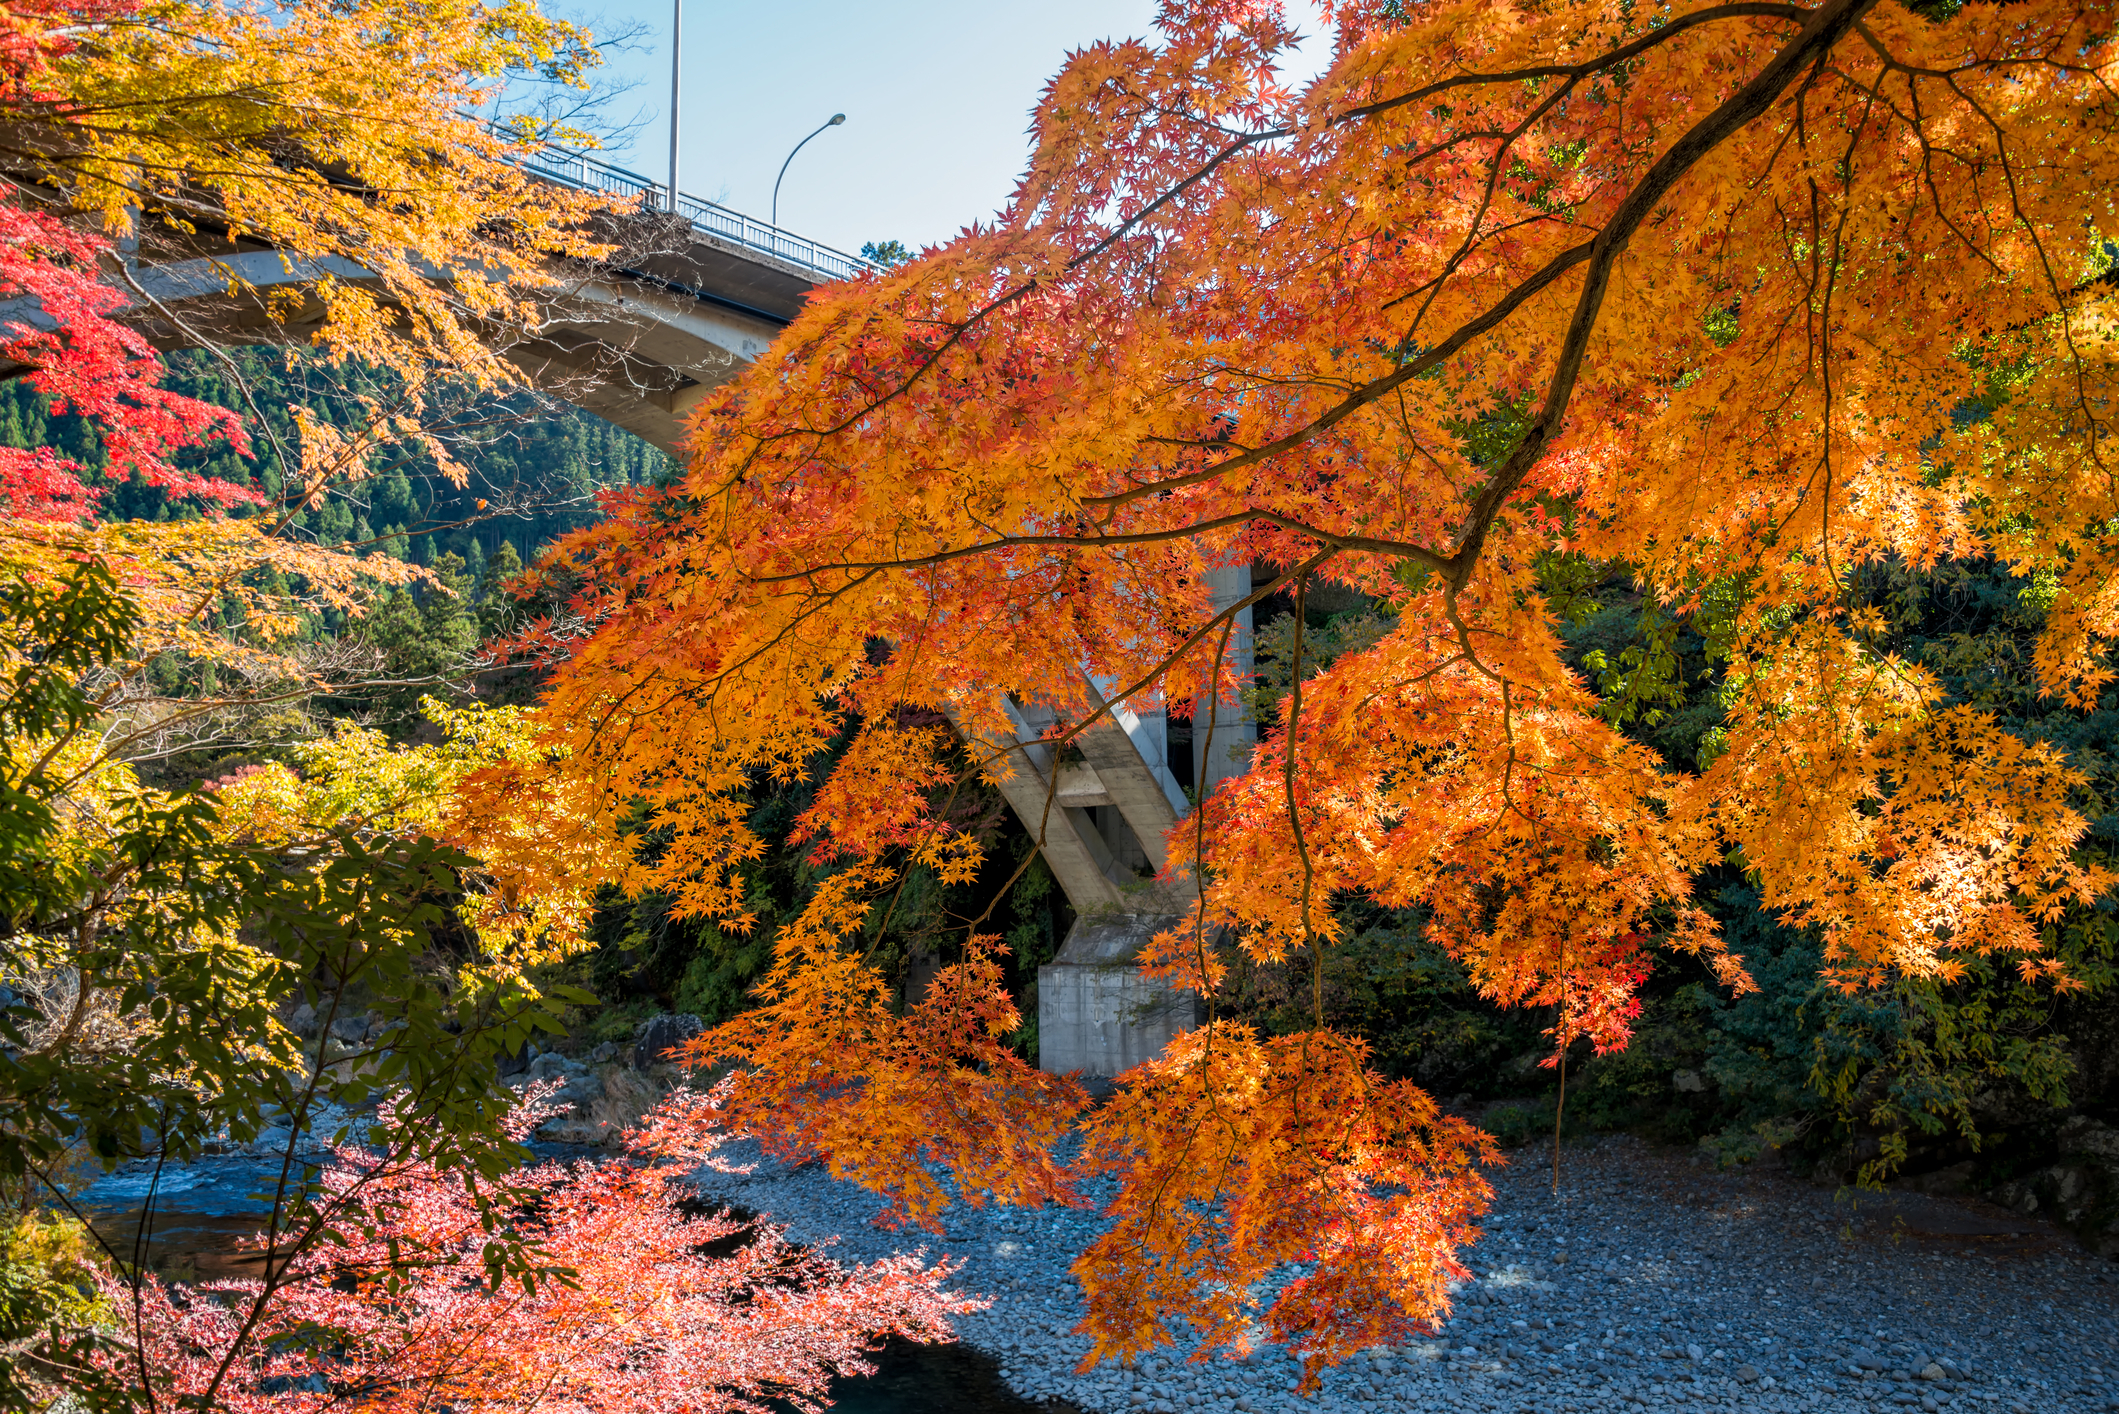 Where to admire autumn leaves in Tokyo